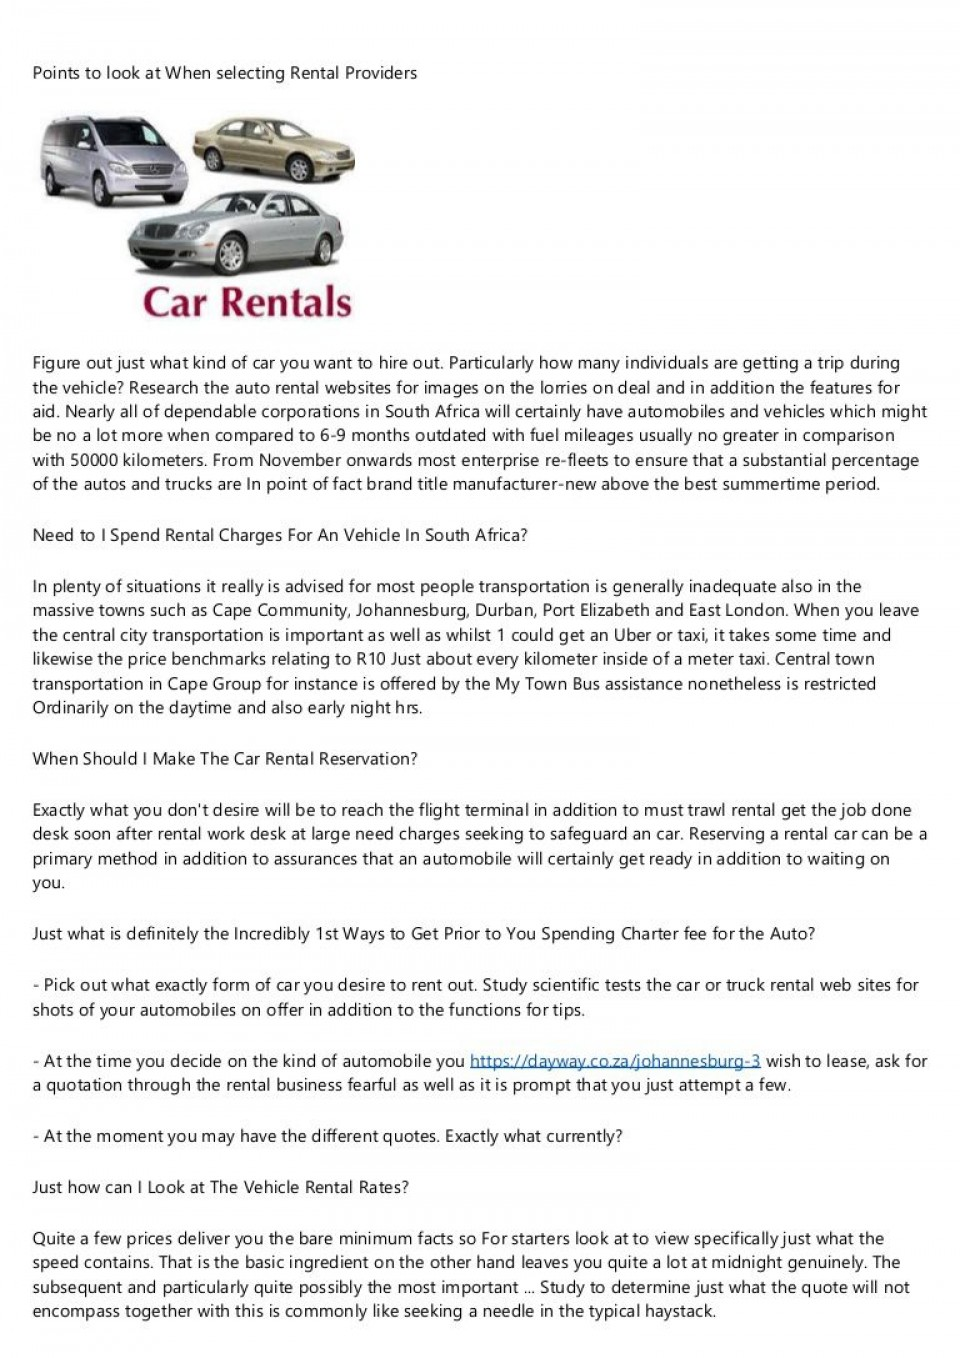 002 Fascinating Car Rental Agreement Template South Africa Example  Vehicle Rent To Own960